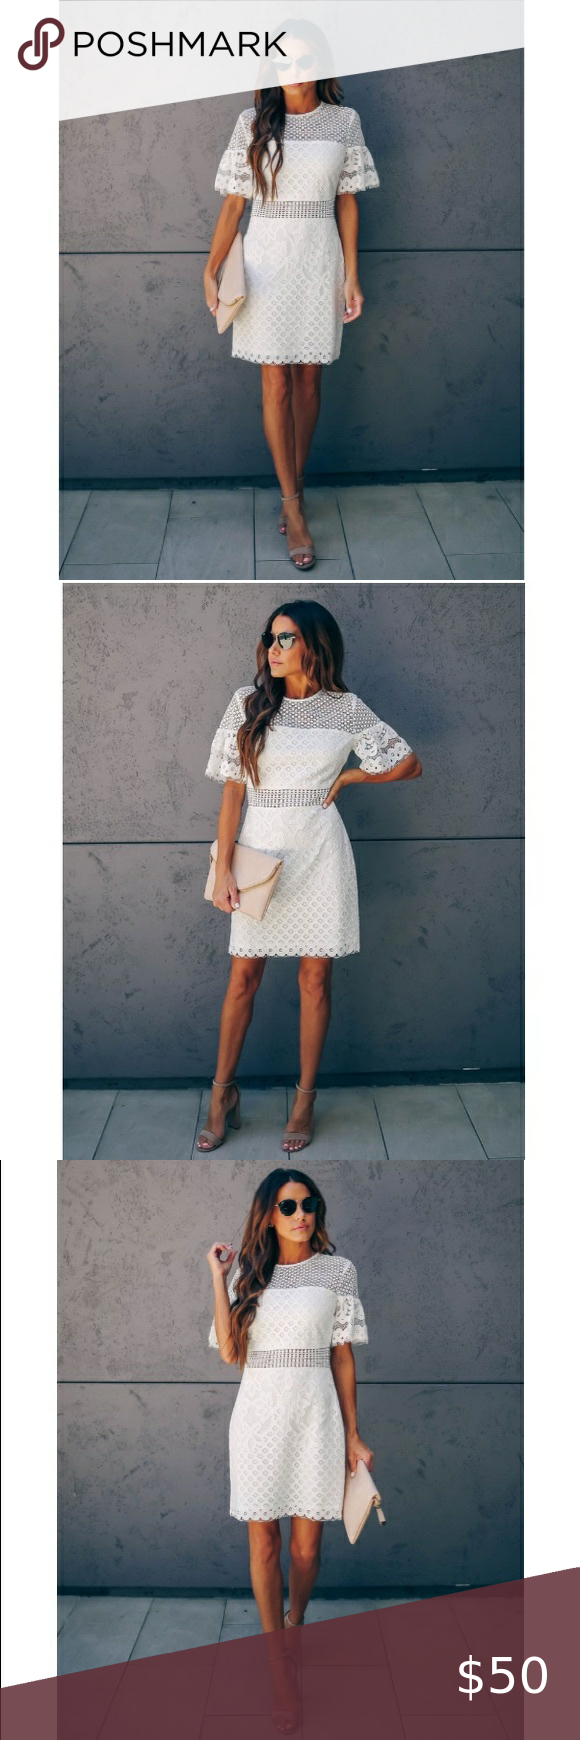 Vici Collection White Corsage Lace Dress Mini Dress With Sleeves Grey Long Sleeve Dress Lace Bell Sleeve Dress [ 1740 x 580 Pixel ]